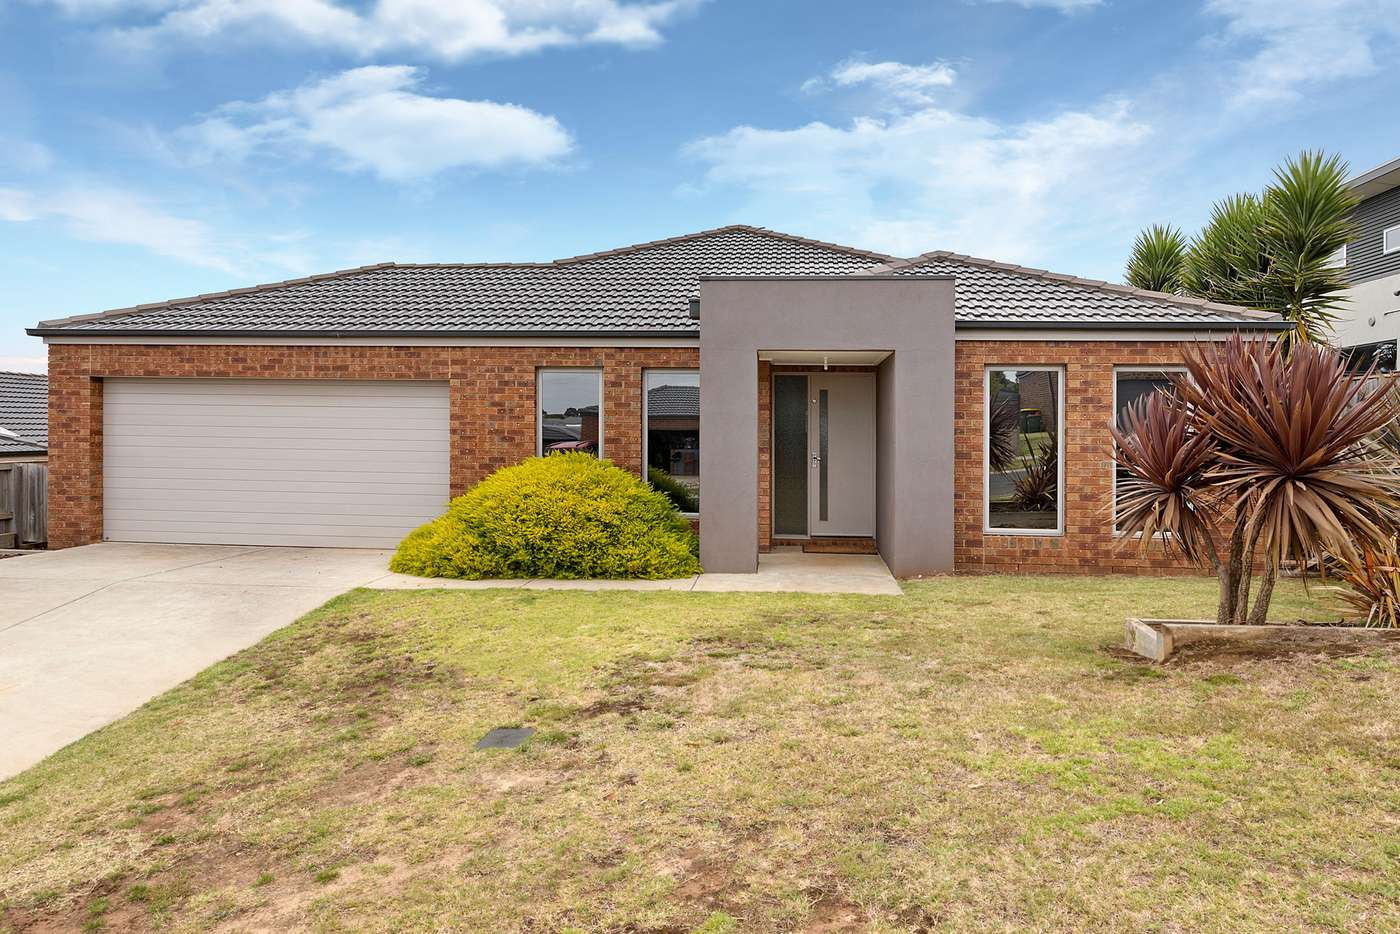 Main view of Homely house listing, 9 Armytage Avenue, Warrnambool VIC 3280